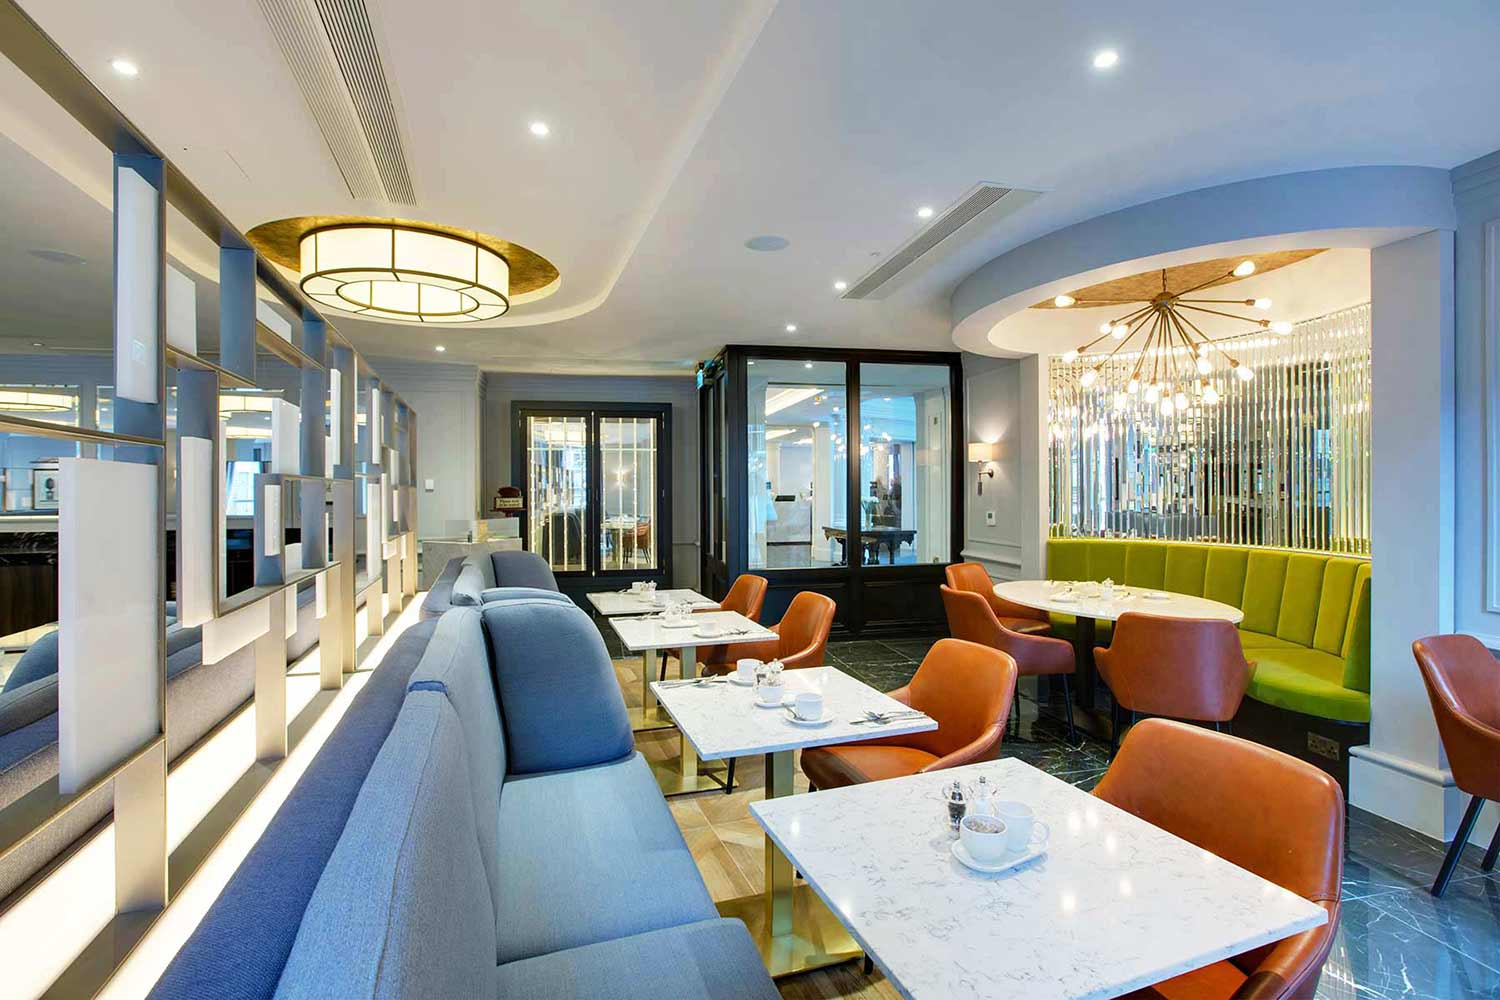 Stylish hotel restaurant